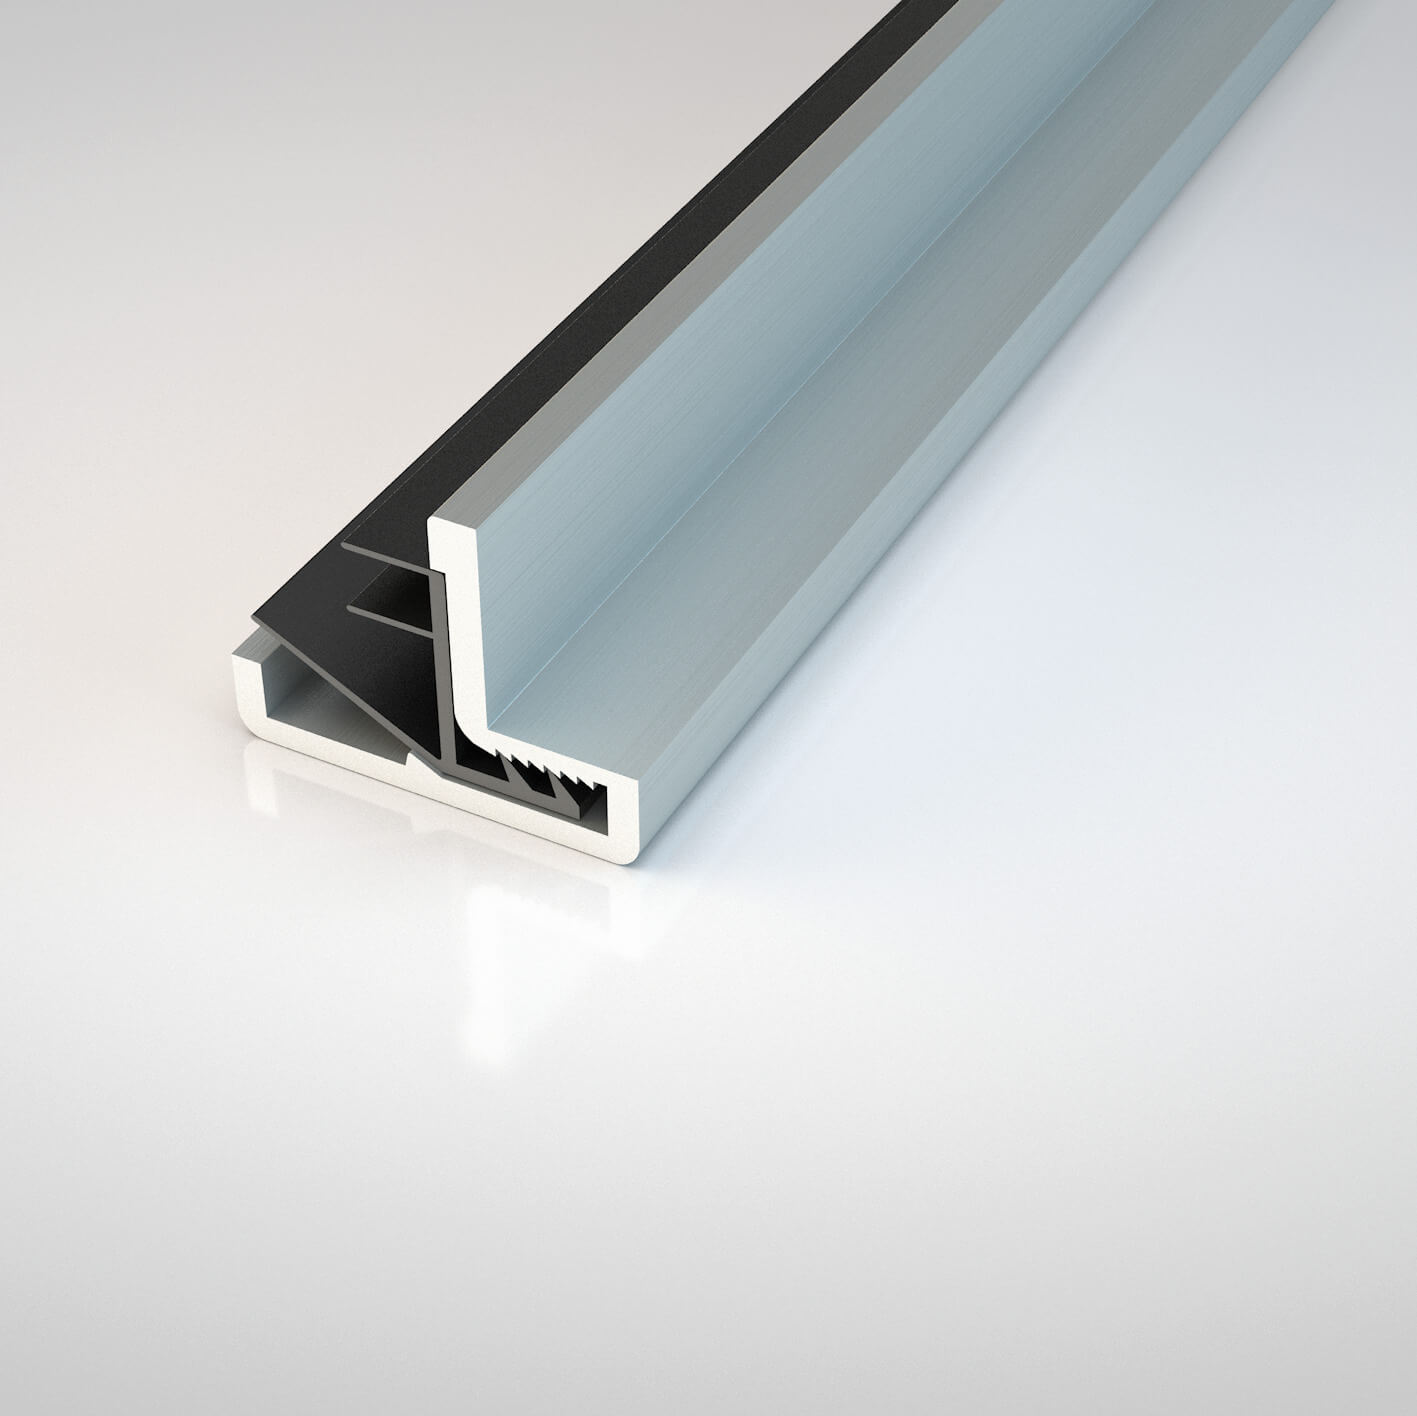 Norseal NOR510 Meeting Stile Seal